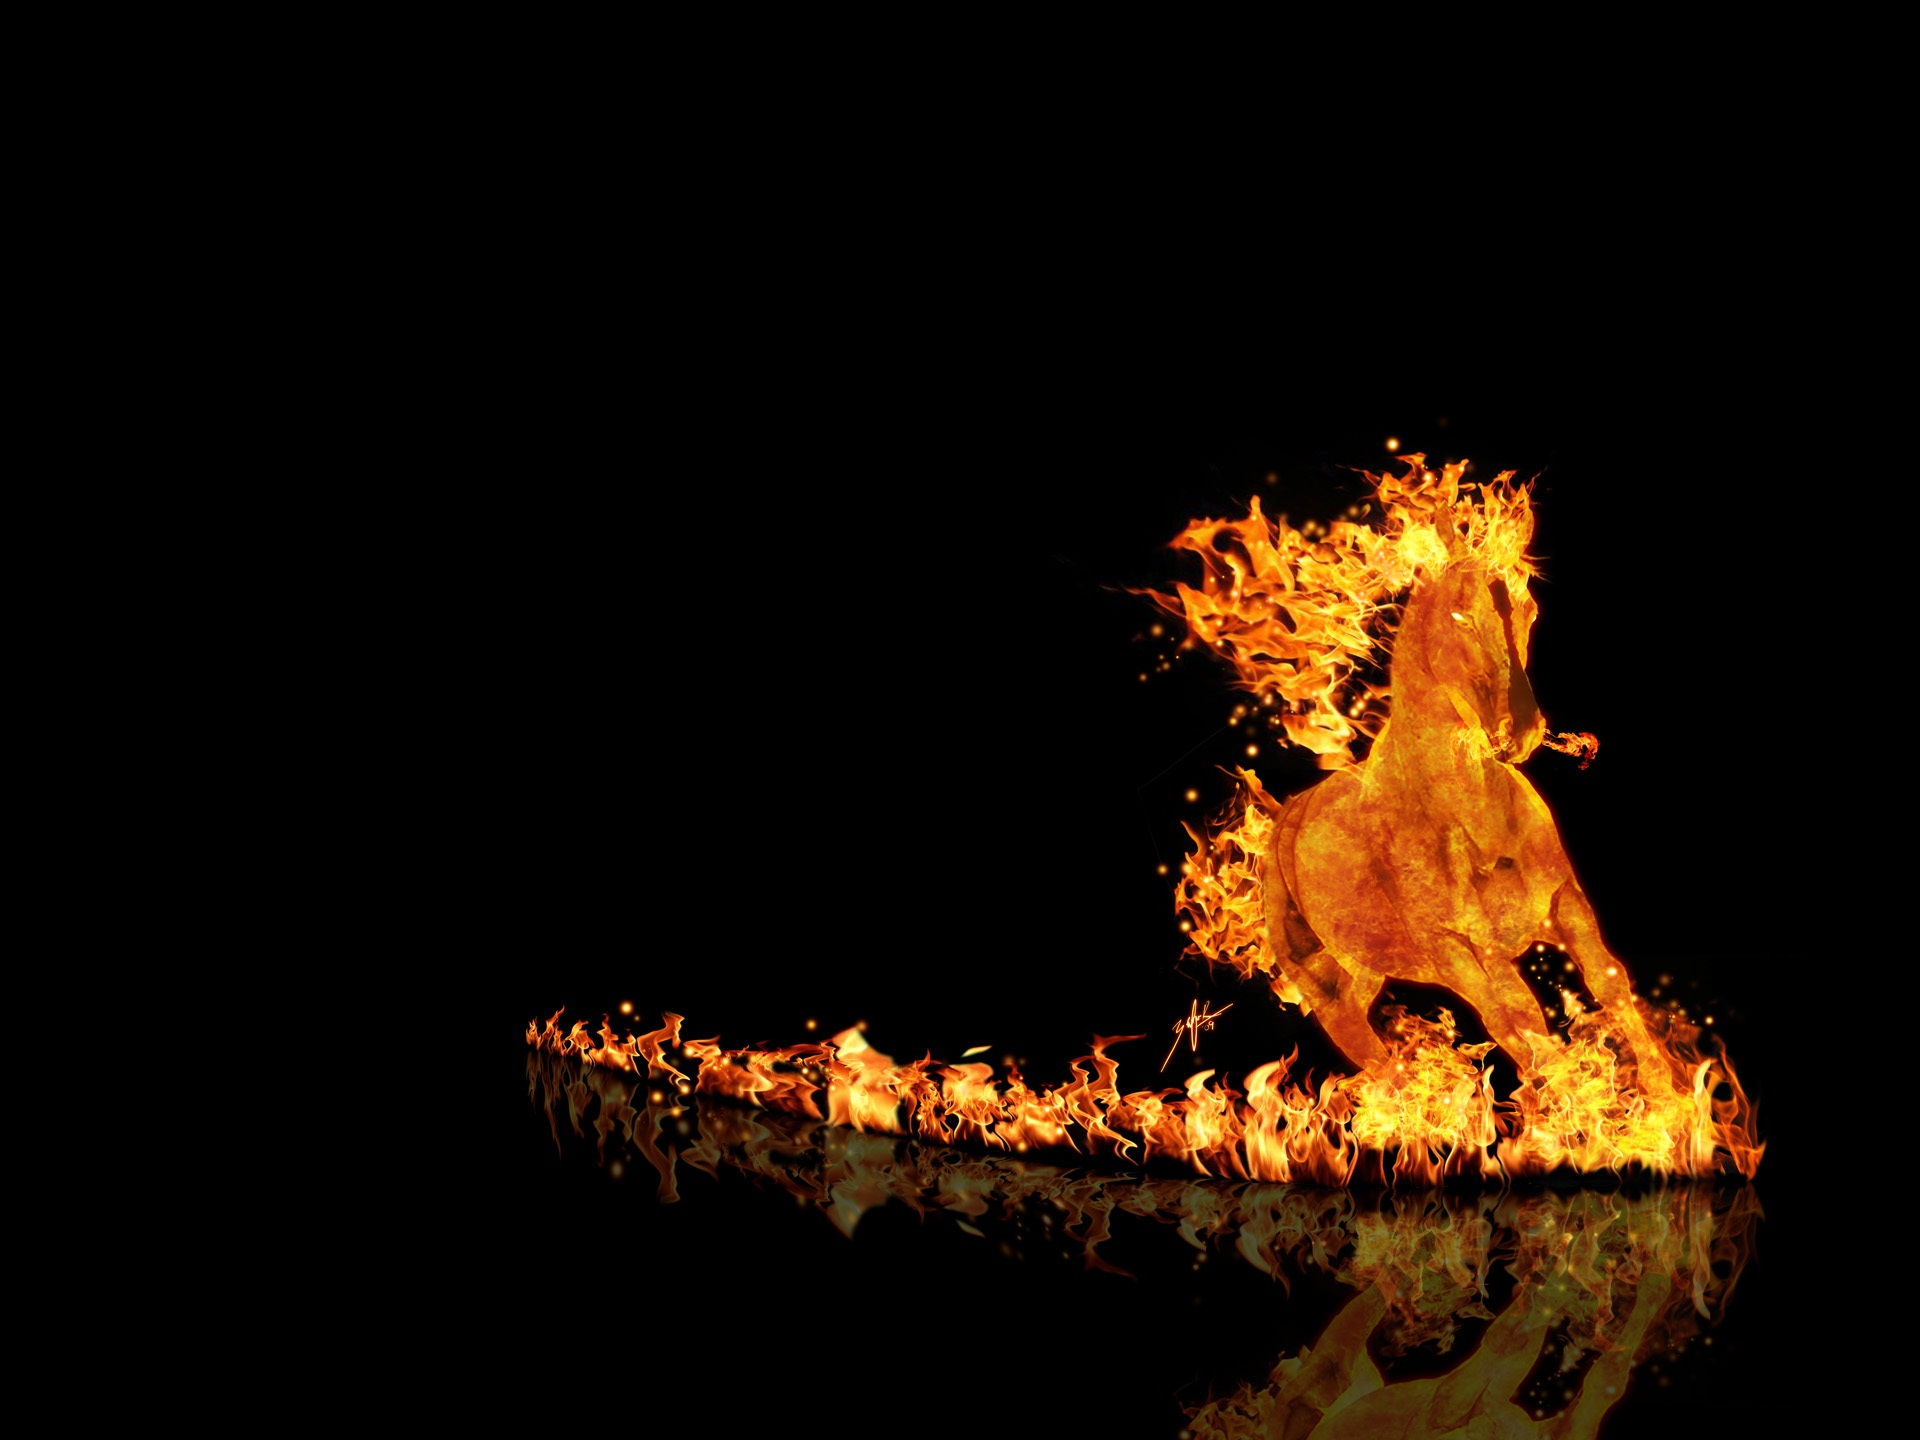 30 Fire Wallpapers Backgrounds Images Pictures Design